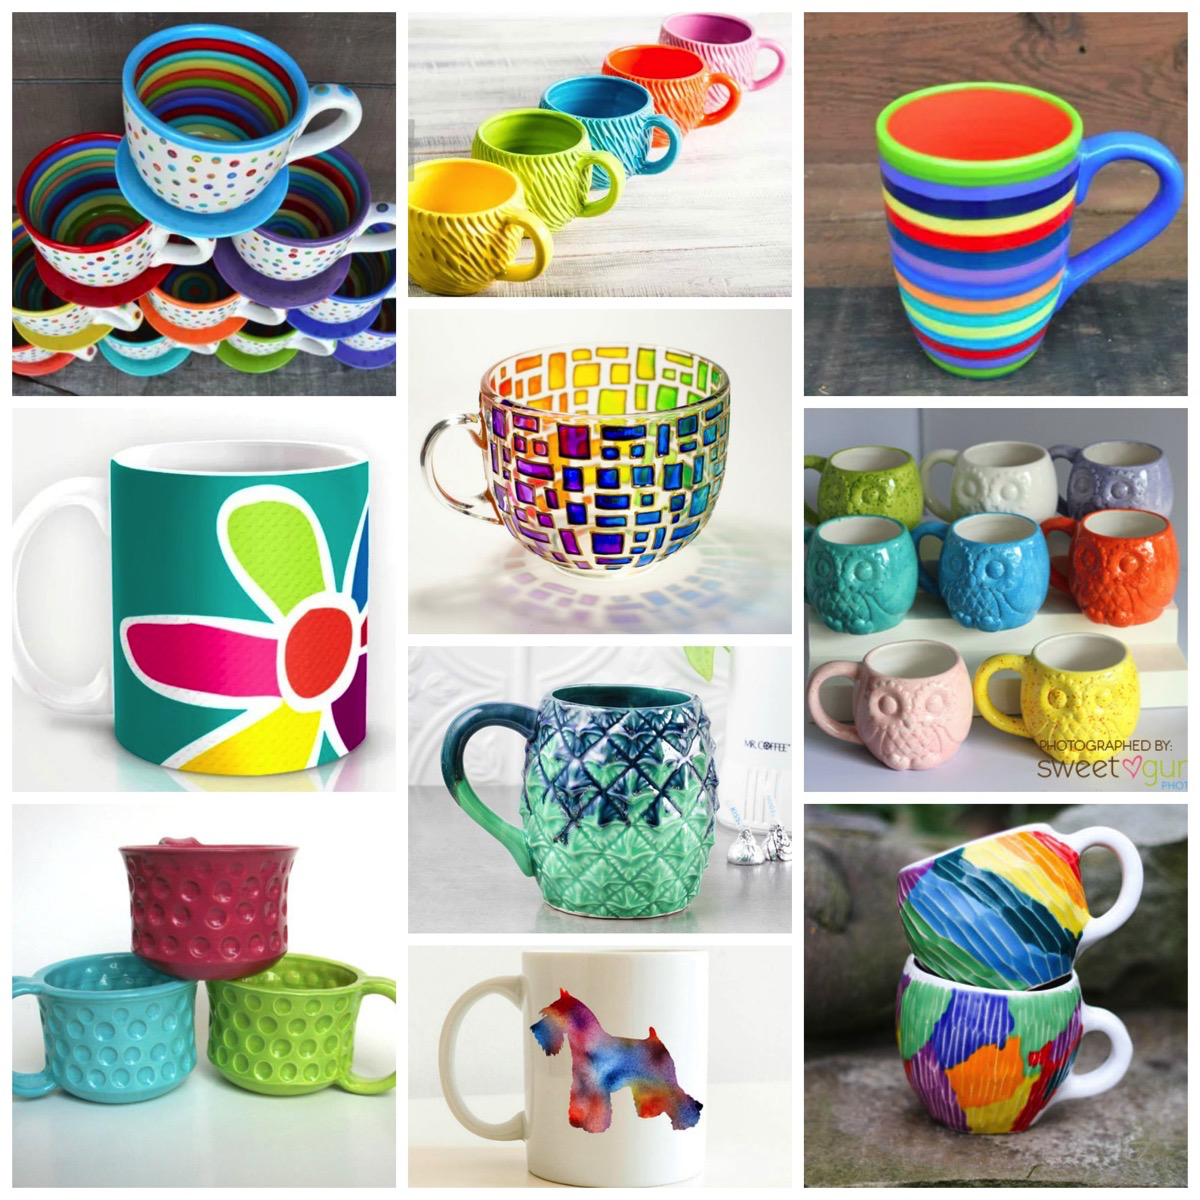 Top 10: Most Colorful and Fun Coffee and Tea Cups On Etsy